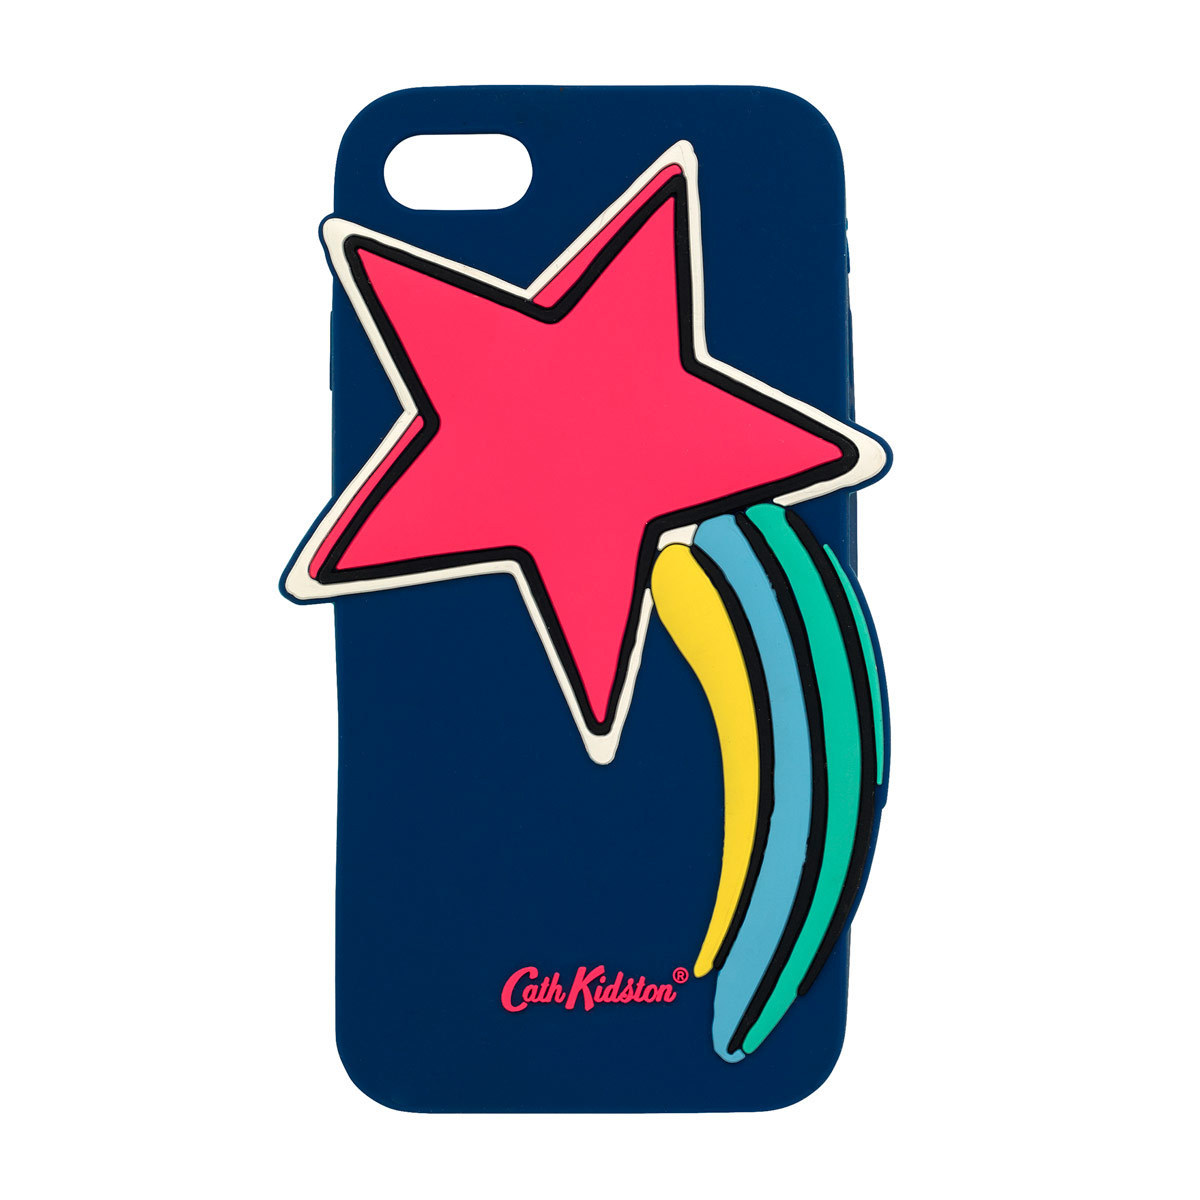 Cath Kidston ★Good Luck Charms  iphone 7 ケース